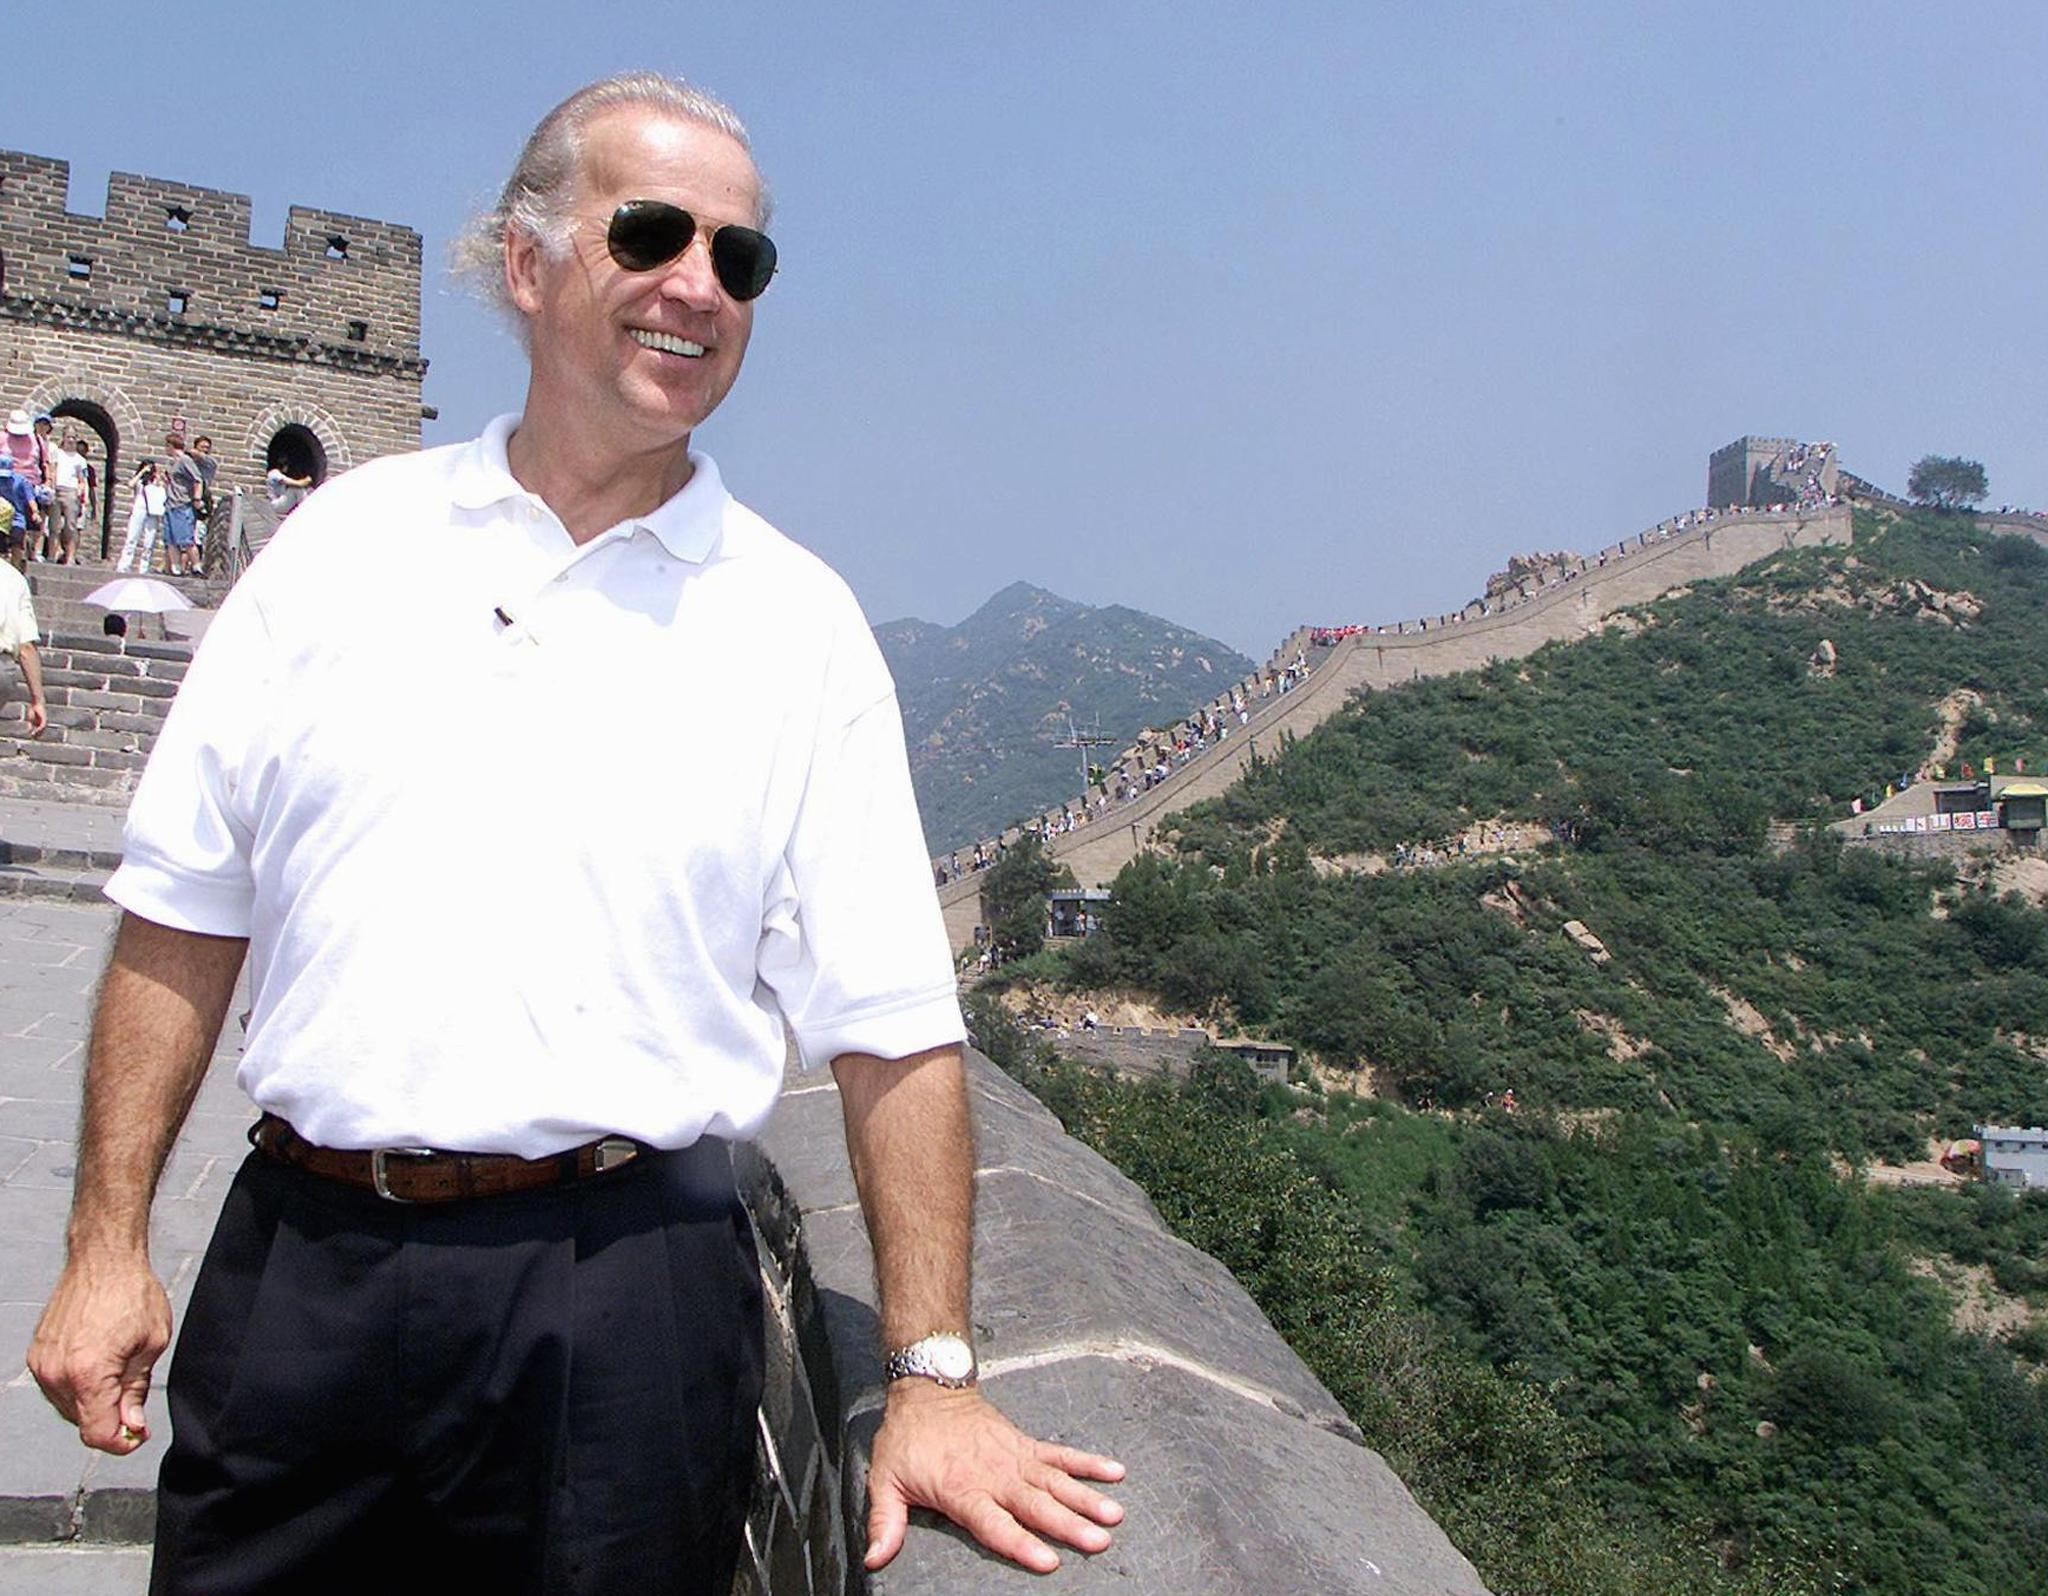 US Senate Foreign Relations Committee Chairman Joseph Biden visits the Great Wall of China at Badaling, north of Beijing, 10 August 2001. After meeting Chinese leaders for two days, Biden and his delegation left Beijing to meet with villagers and visit the Great Wall. AFP PHOTO/POOL (Photo by Greg Baker / POOL / AFP) (Photo by GREG BAKER/POOL/AFP via Getty Images)